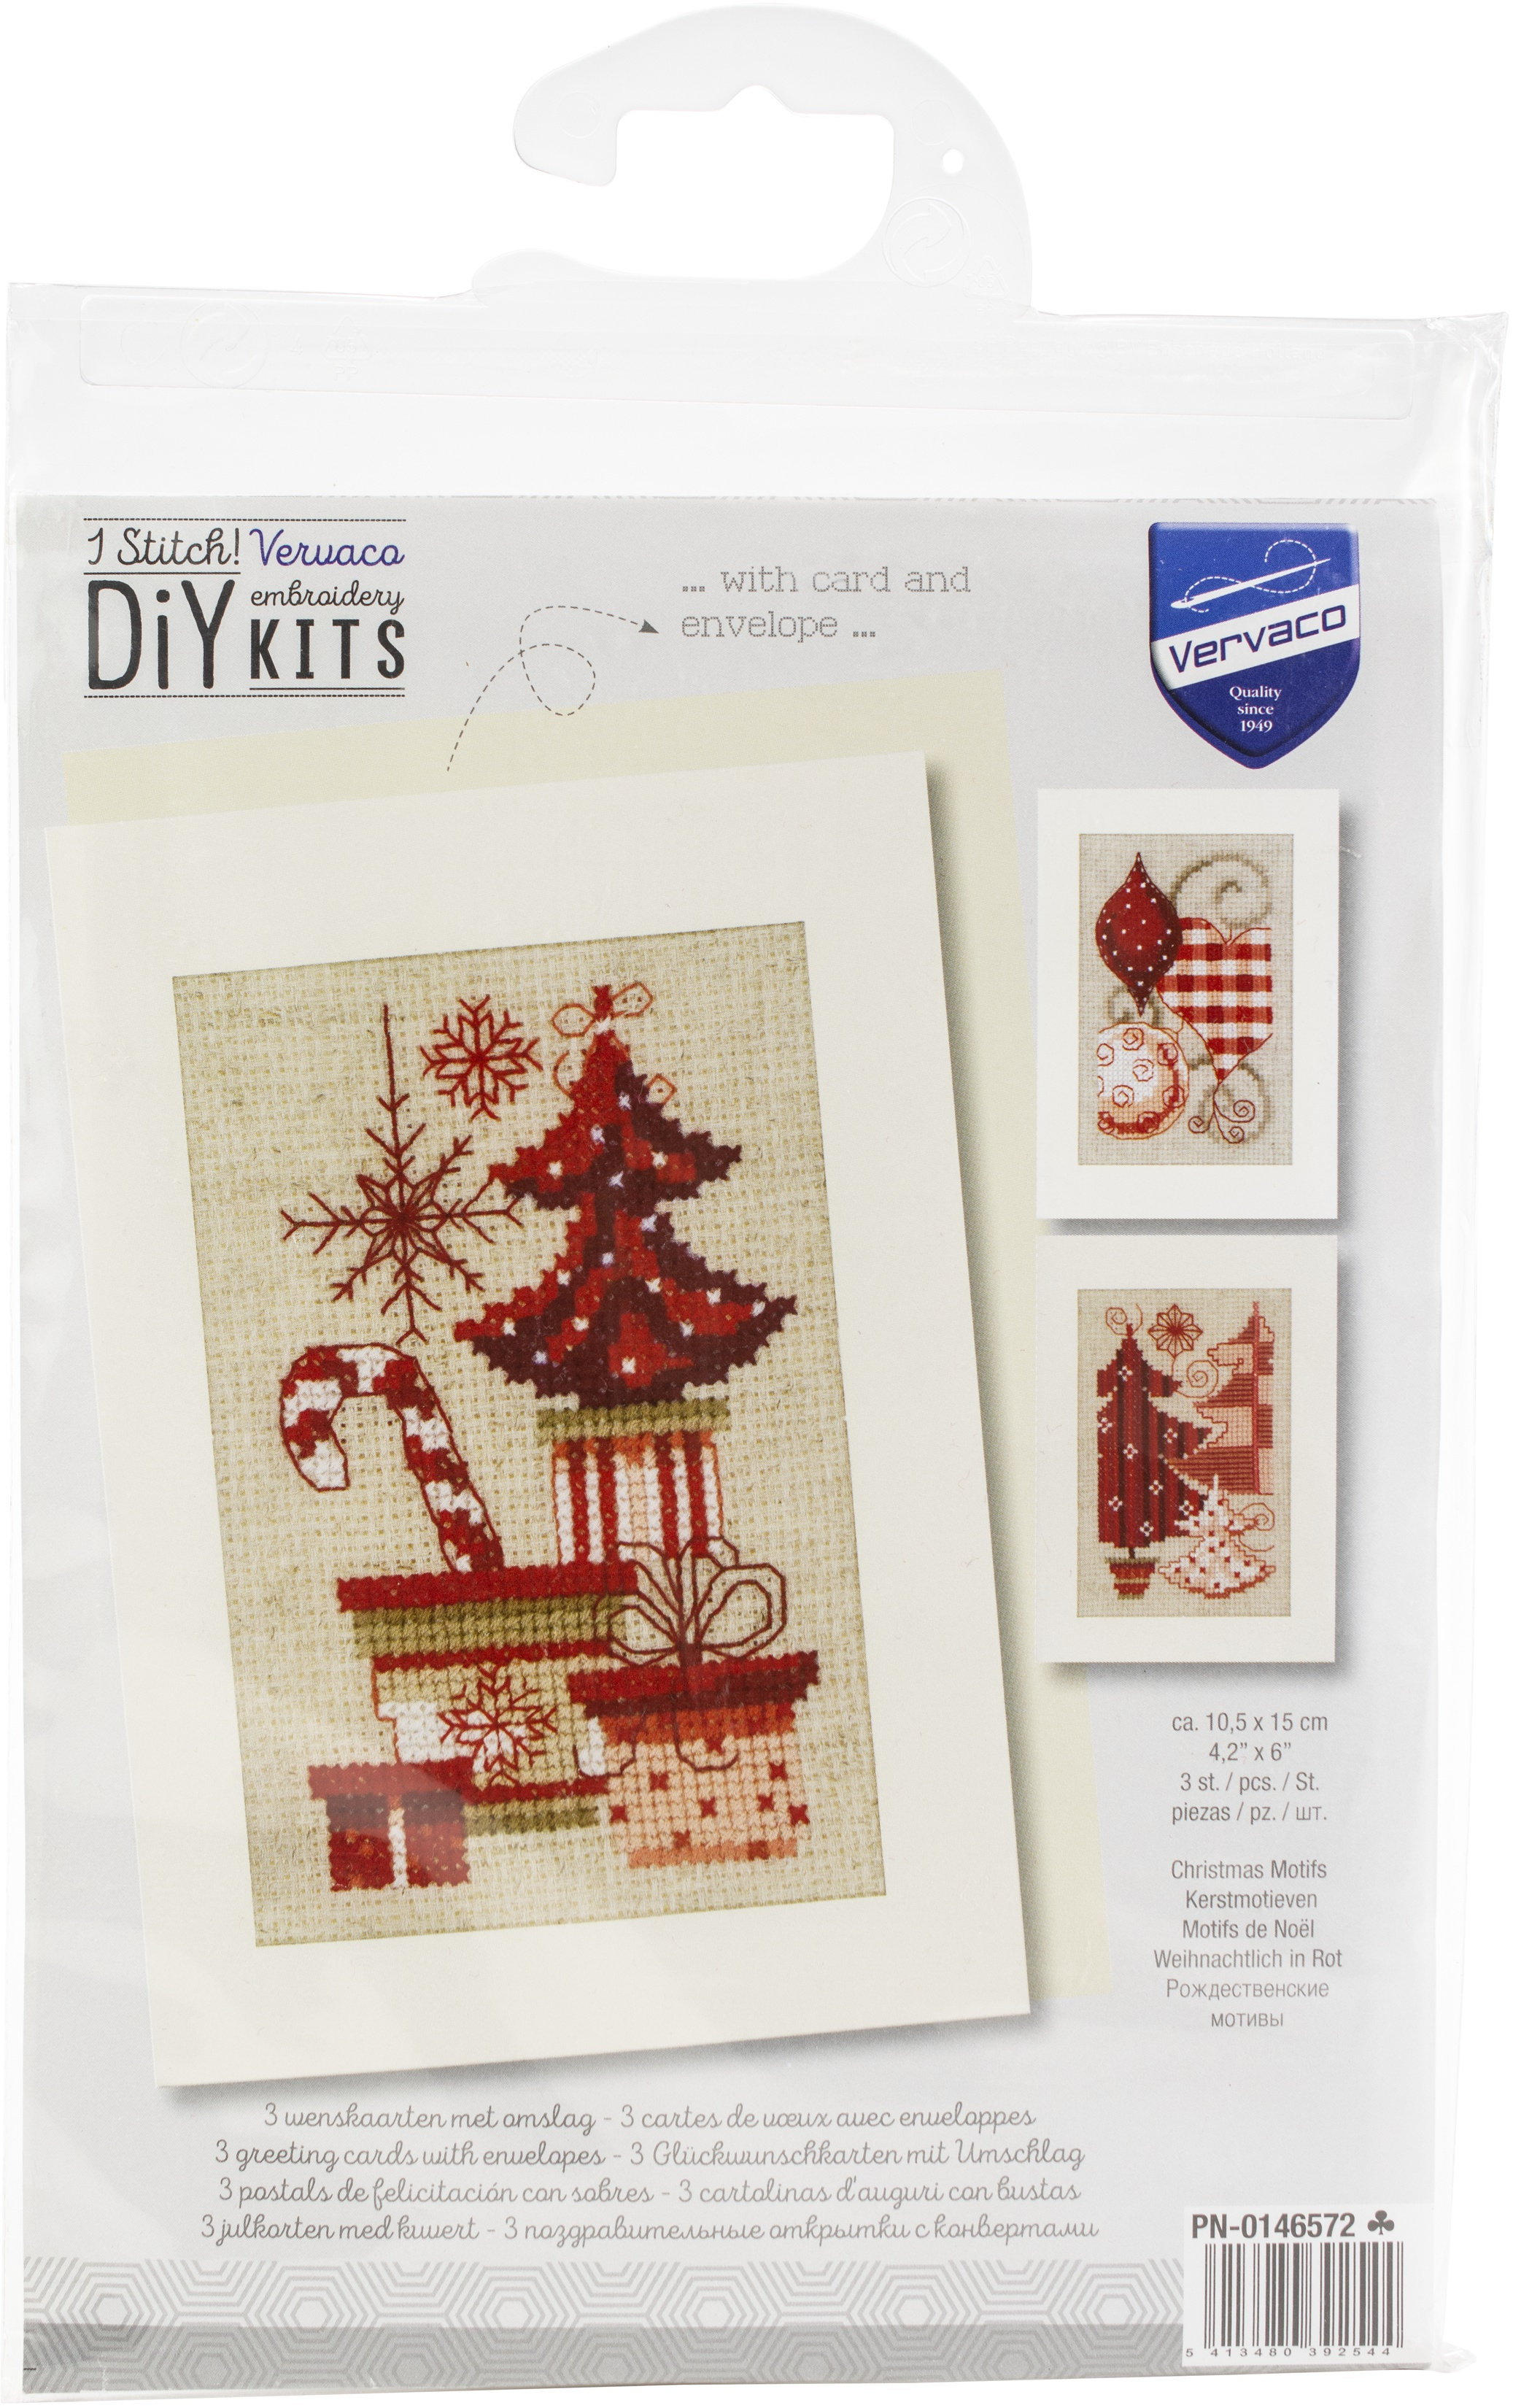 Vervaco Greeting Card Counted Cross Stitch Kit 4.25X6 3/Pk-Christmas Motifs On...